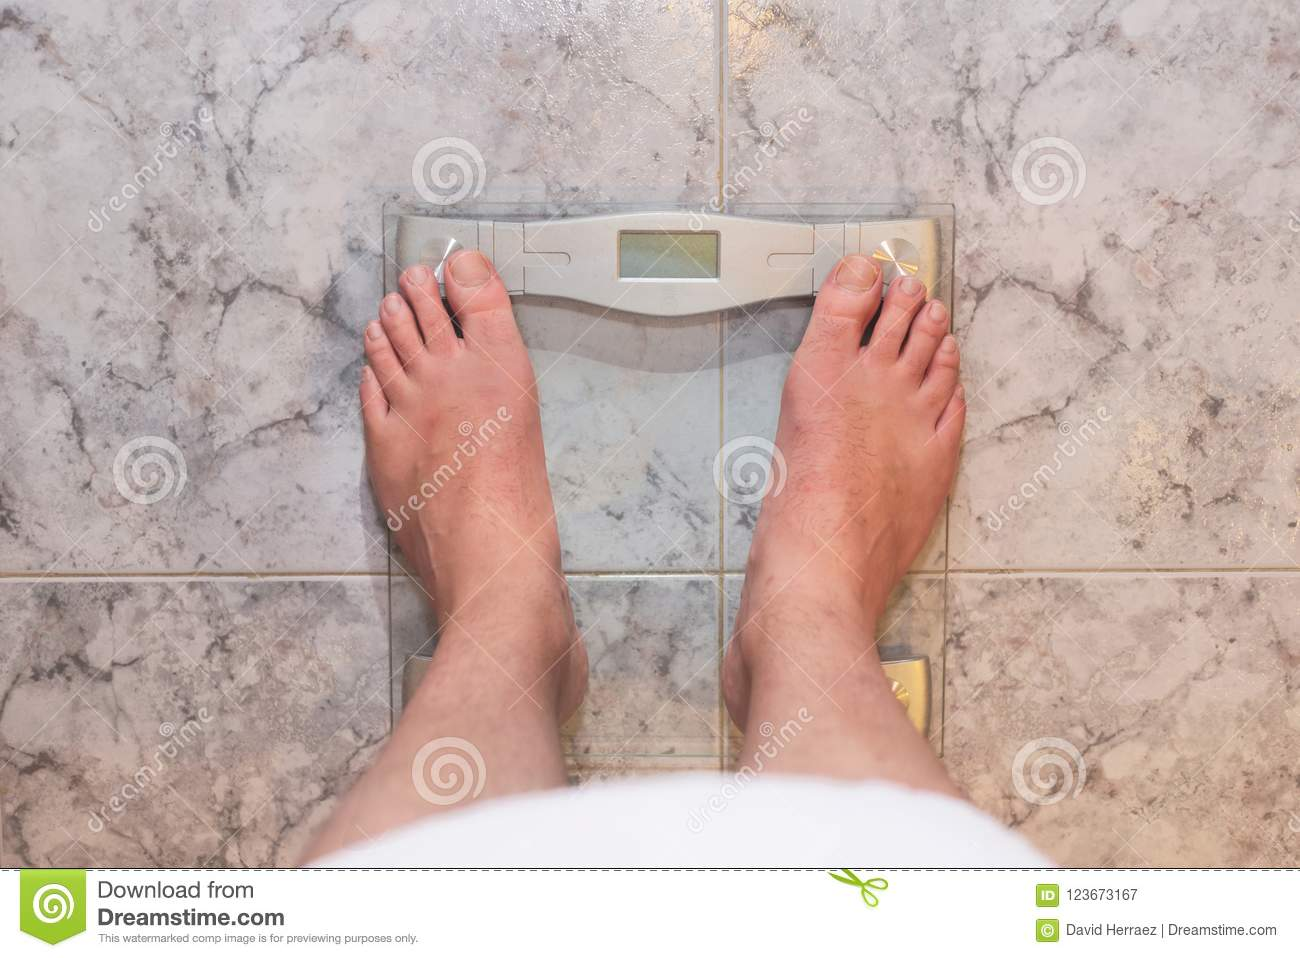 Man feet standing on weight scale